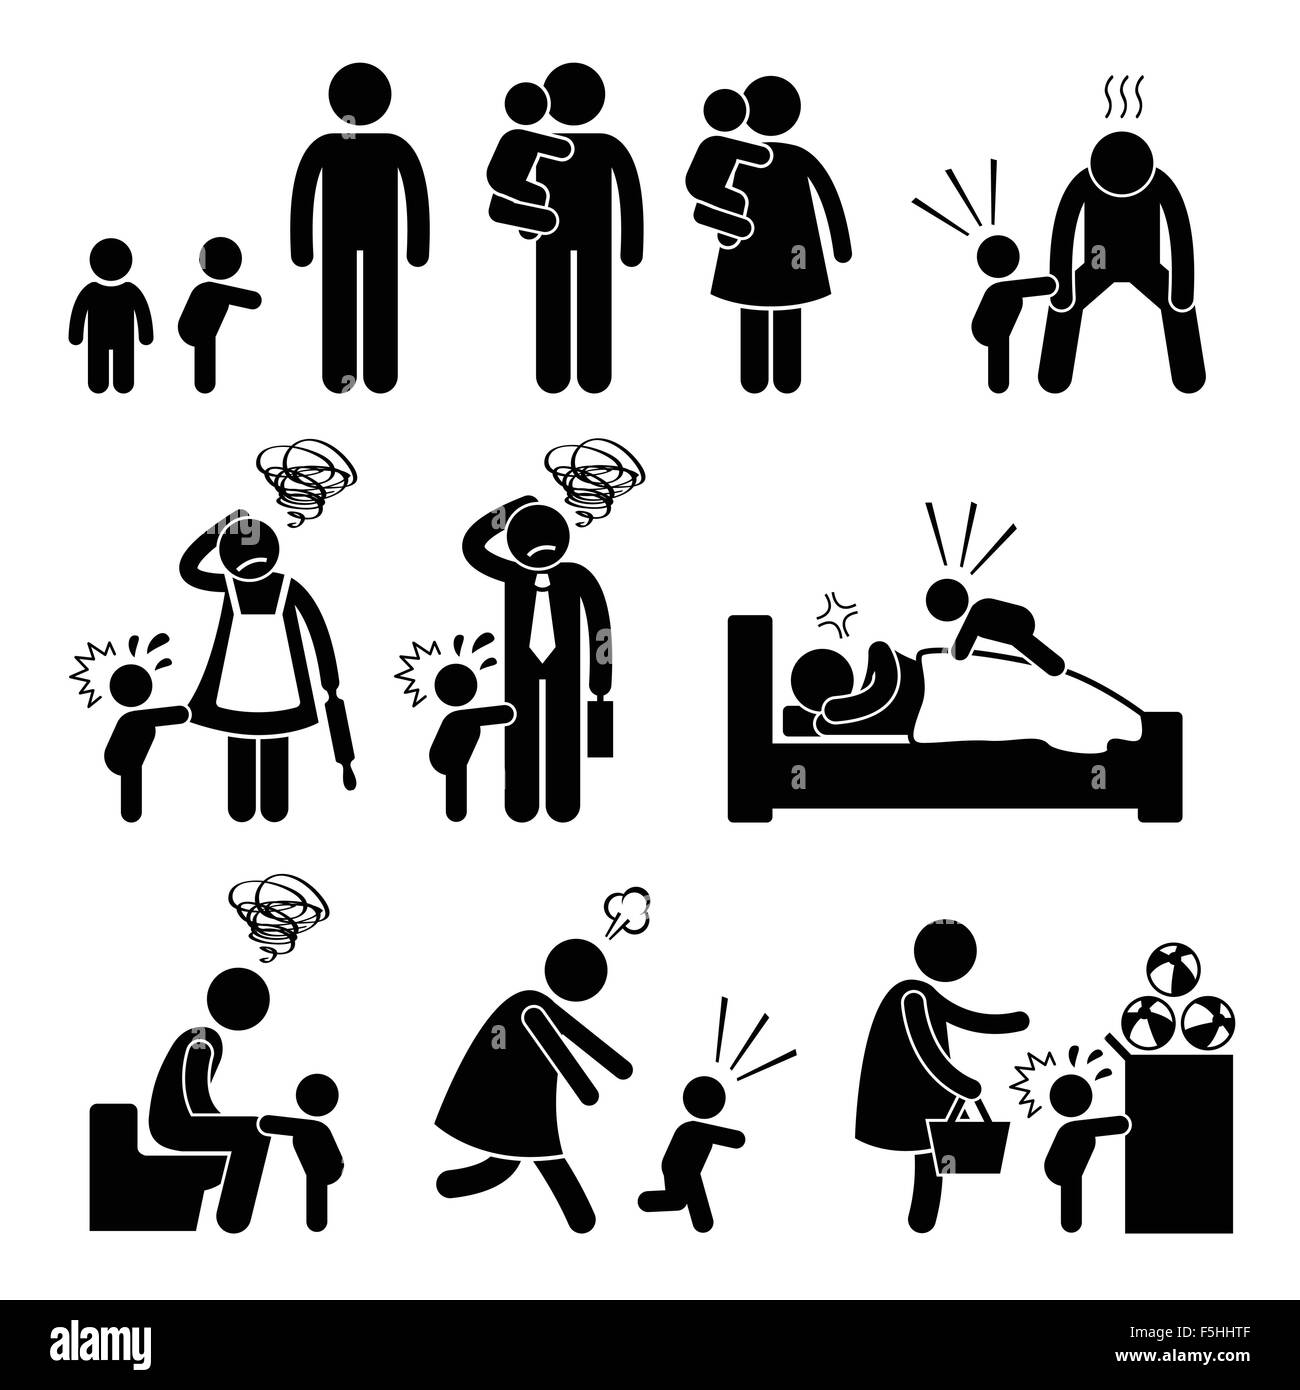 Bad Temper Toddler Baby Tantrum with Mother and Father Stick Figure Pictogram Icons - Stock Image